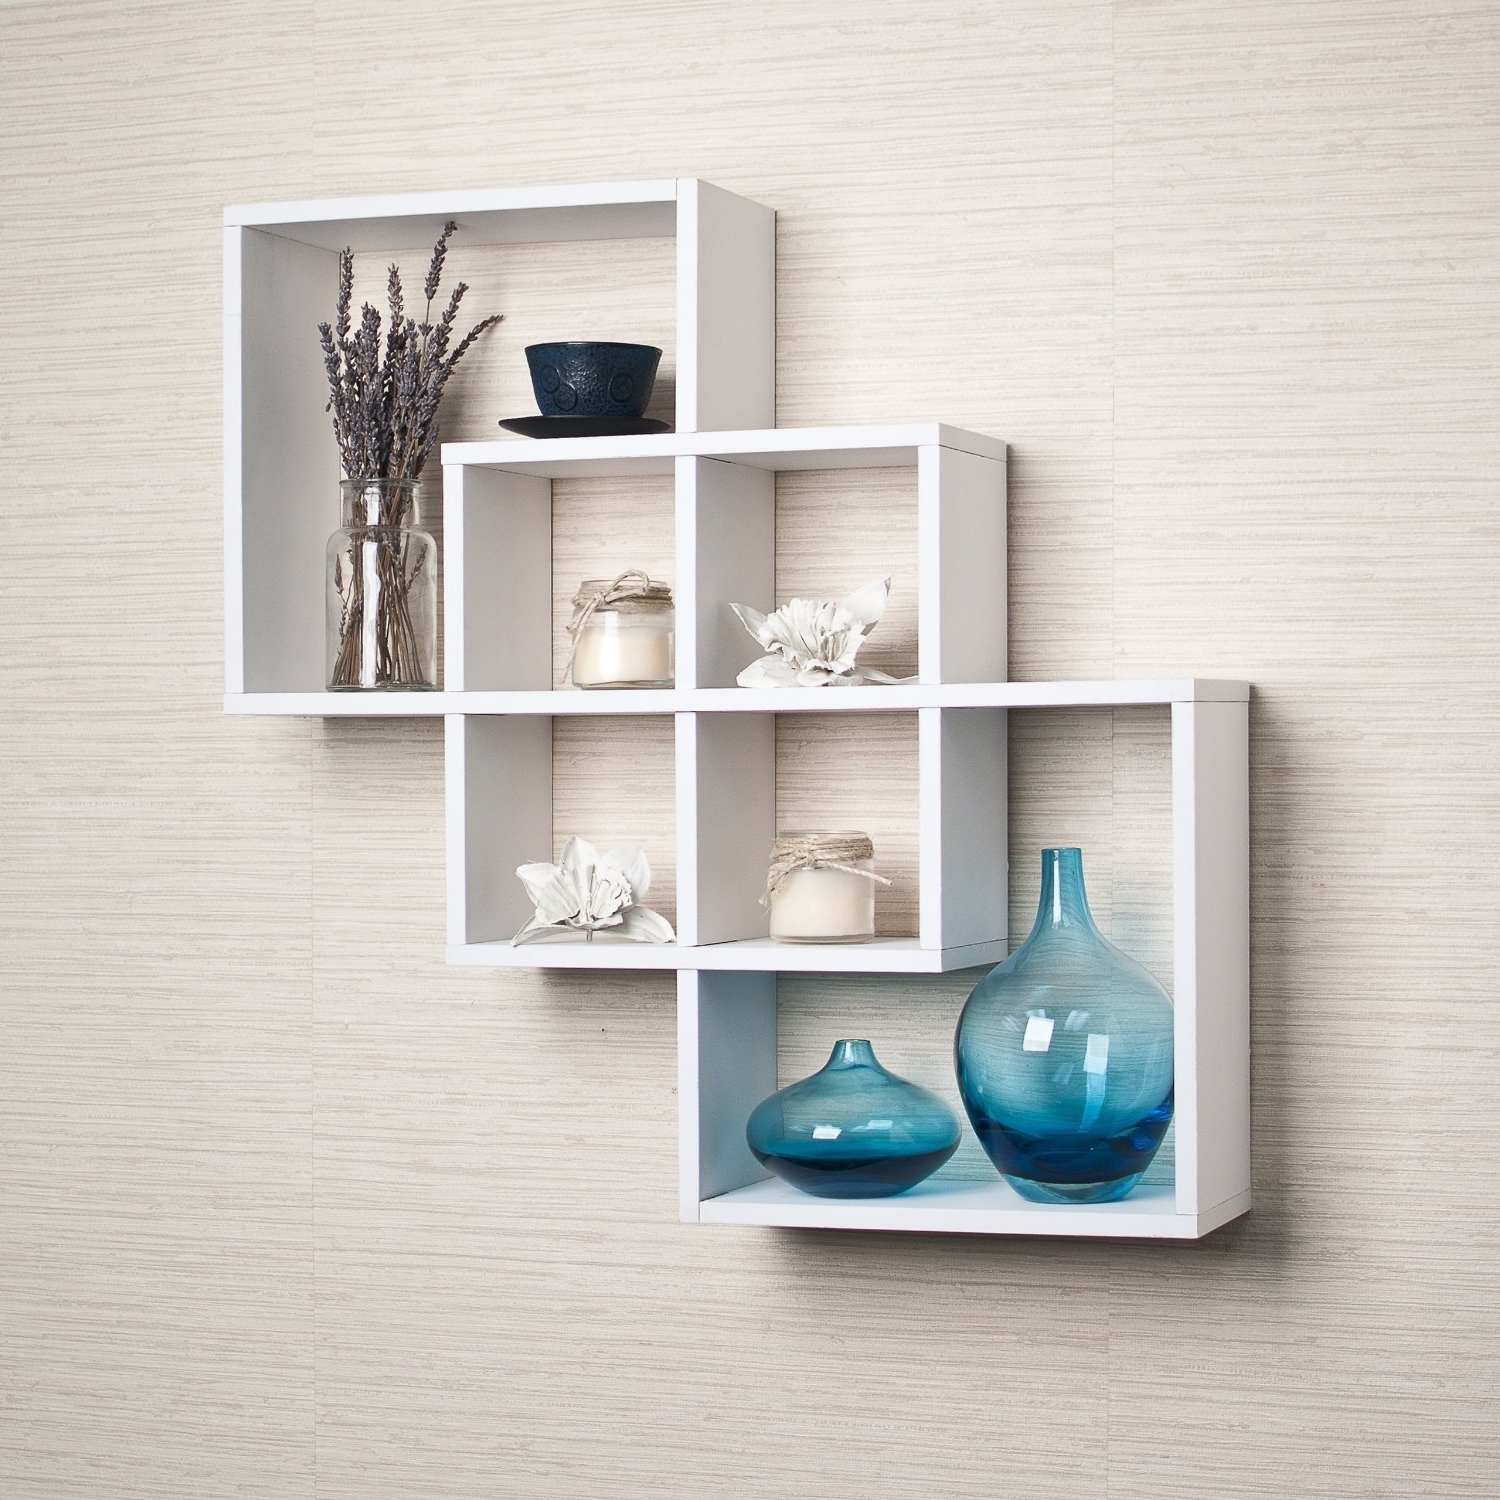 Most Recent White Wall Shelves Regarding Amazon: Danya B (View 14 of 15)